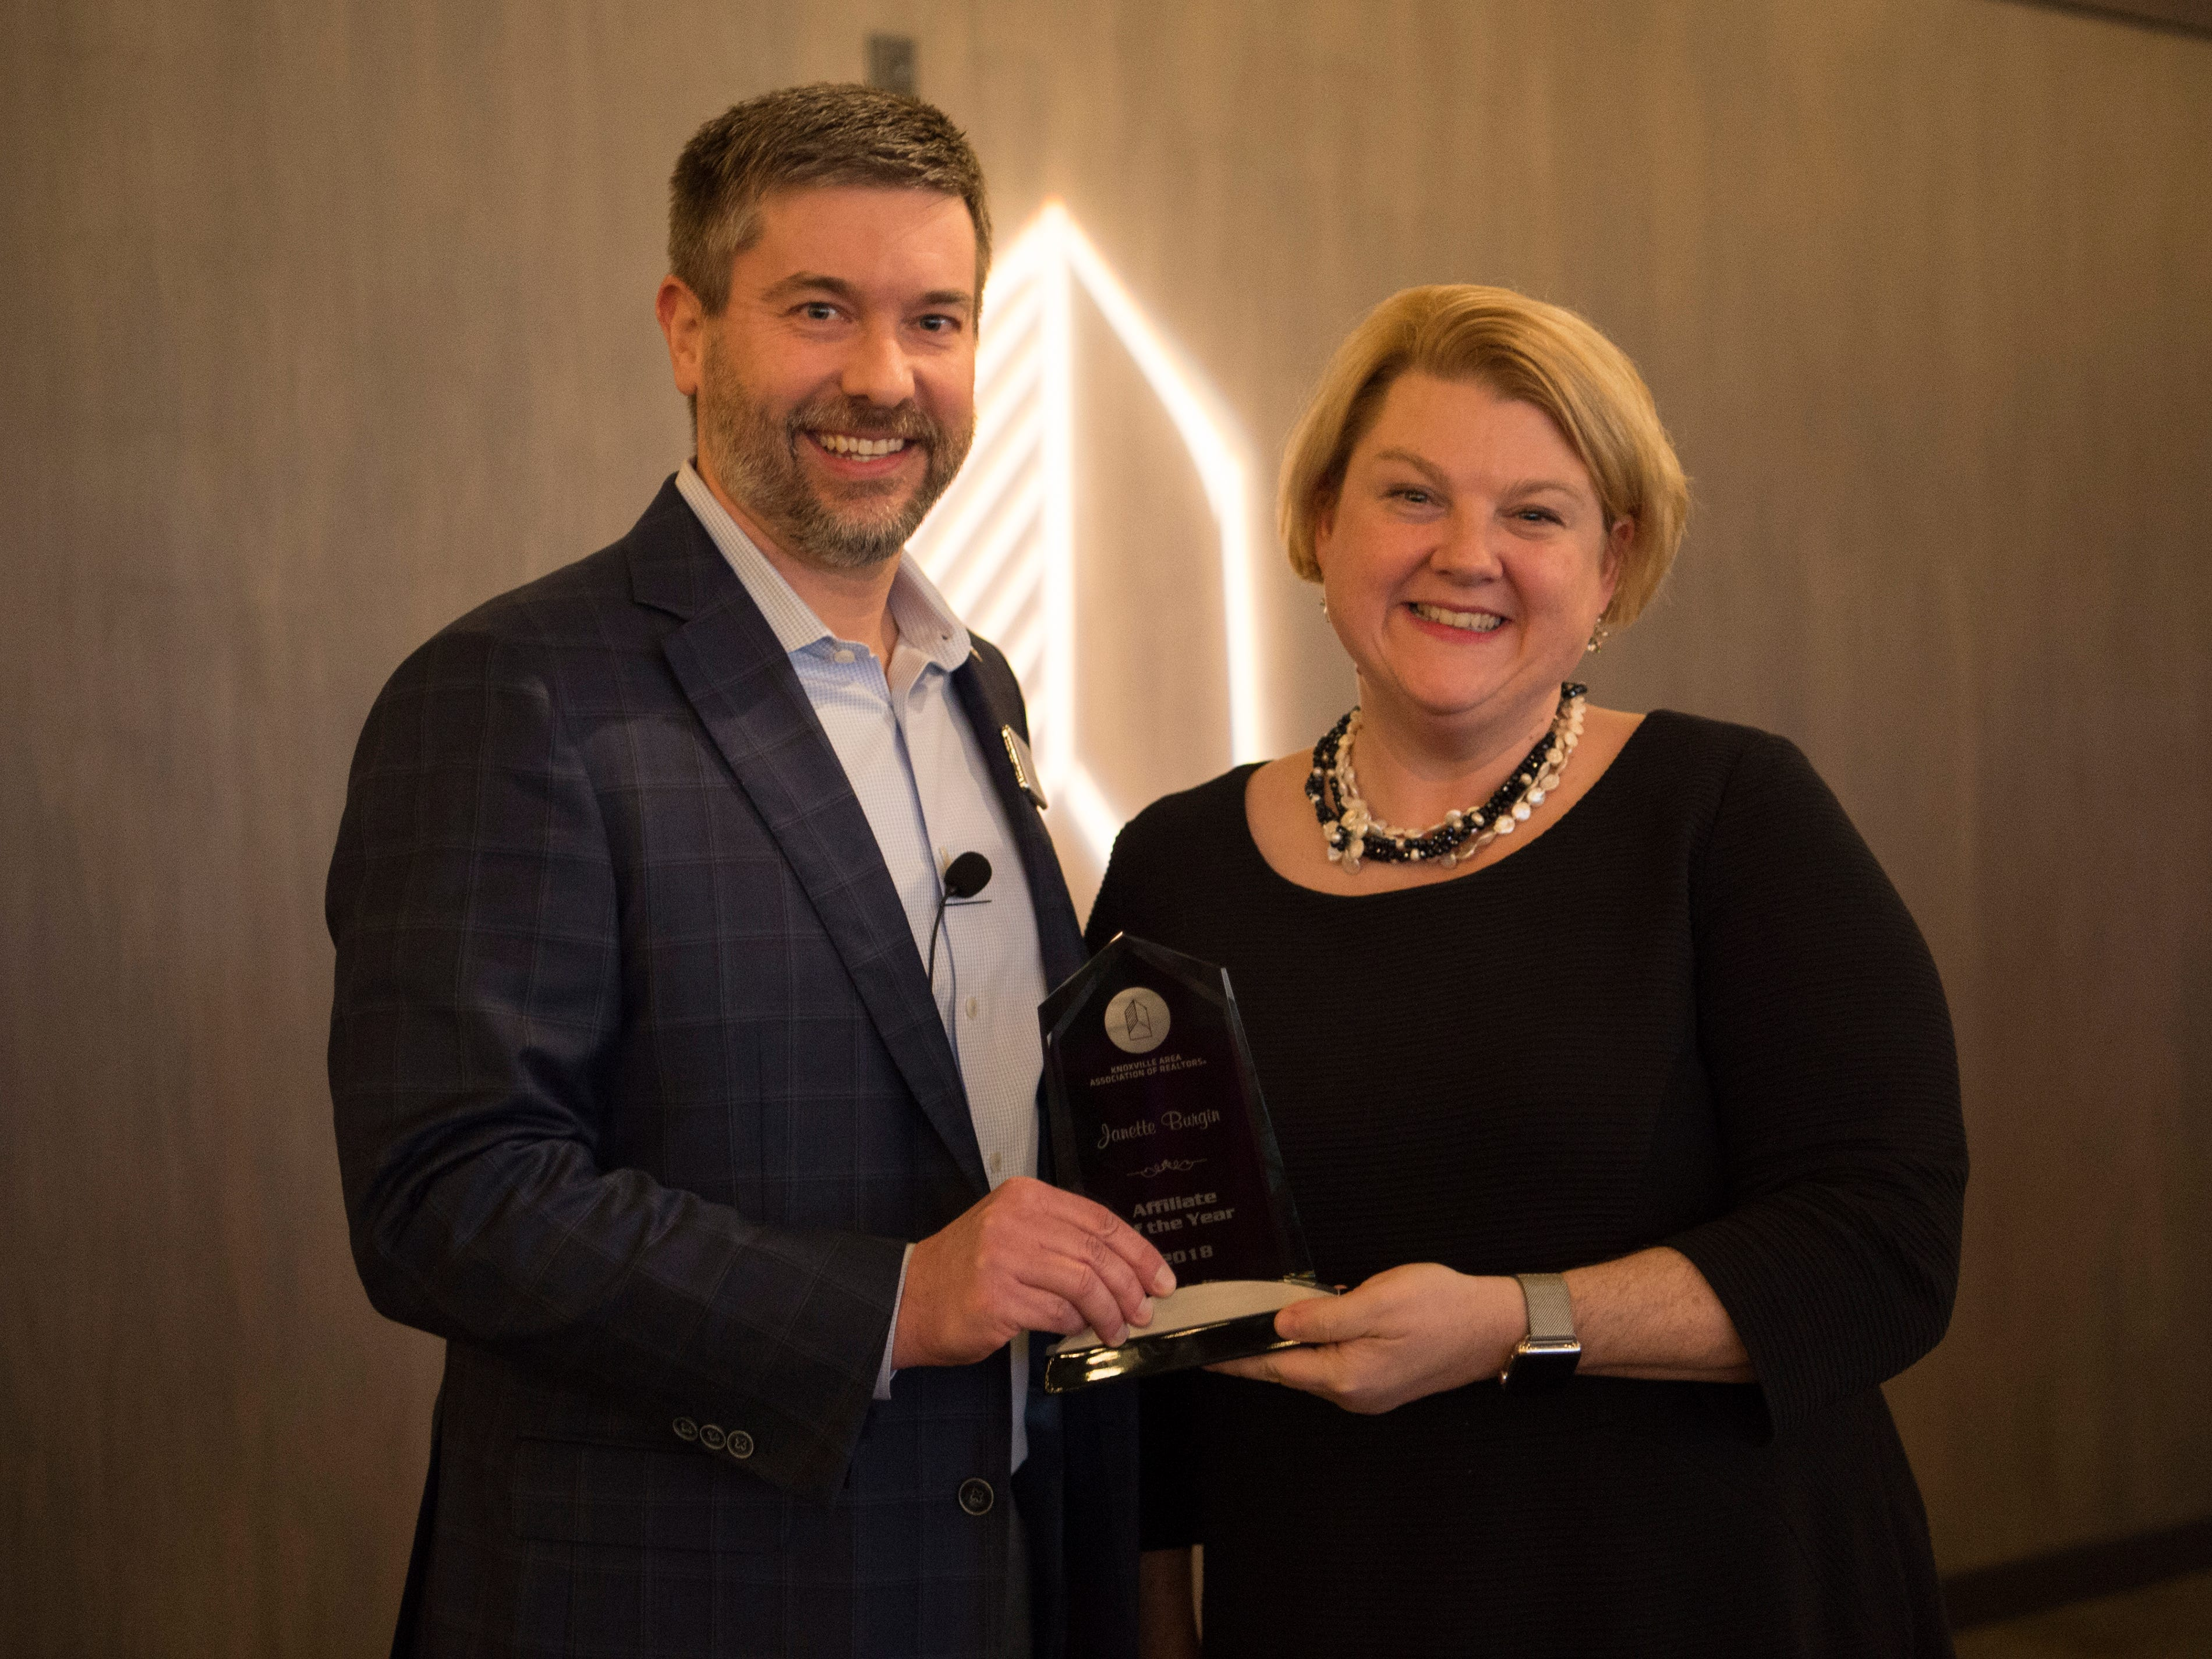 Janette Burgin, right, is awarded Affiliate of the Year at the Commercial and Residential Real Estate Awards held at The Press Room in Knoxville on Tuesday, February 12, 2019.